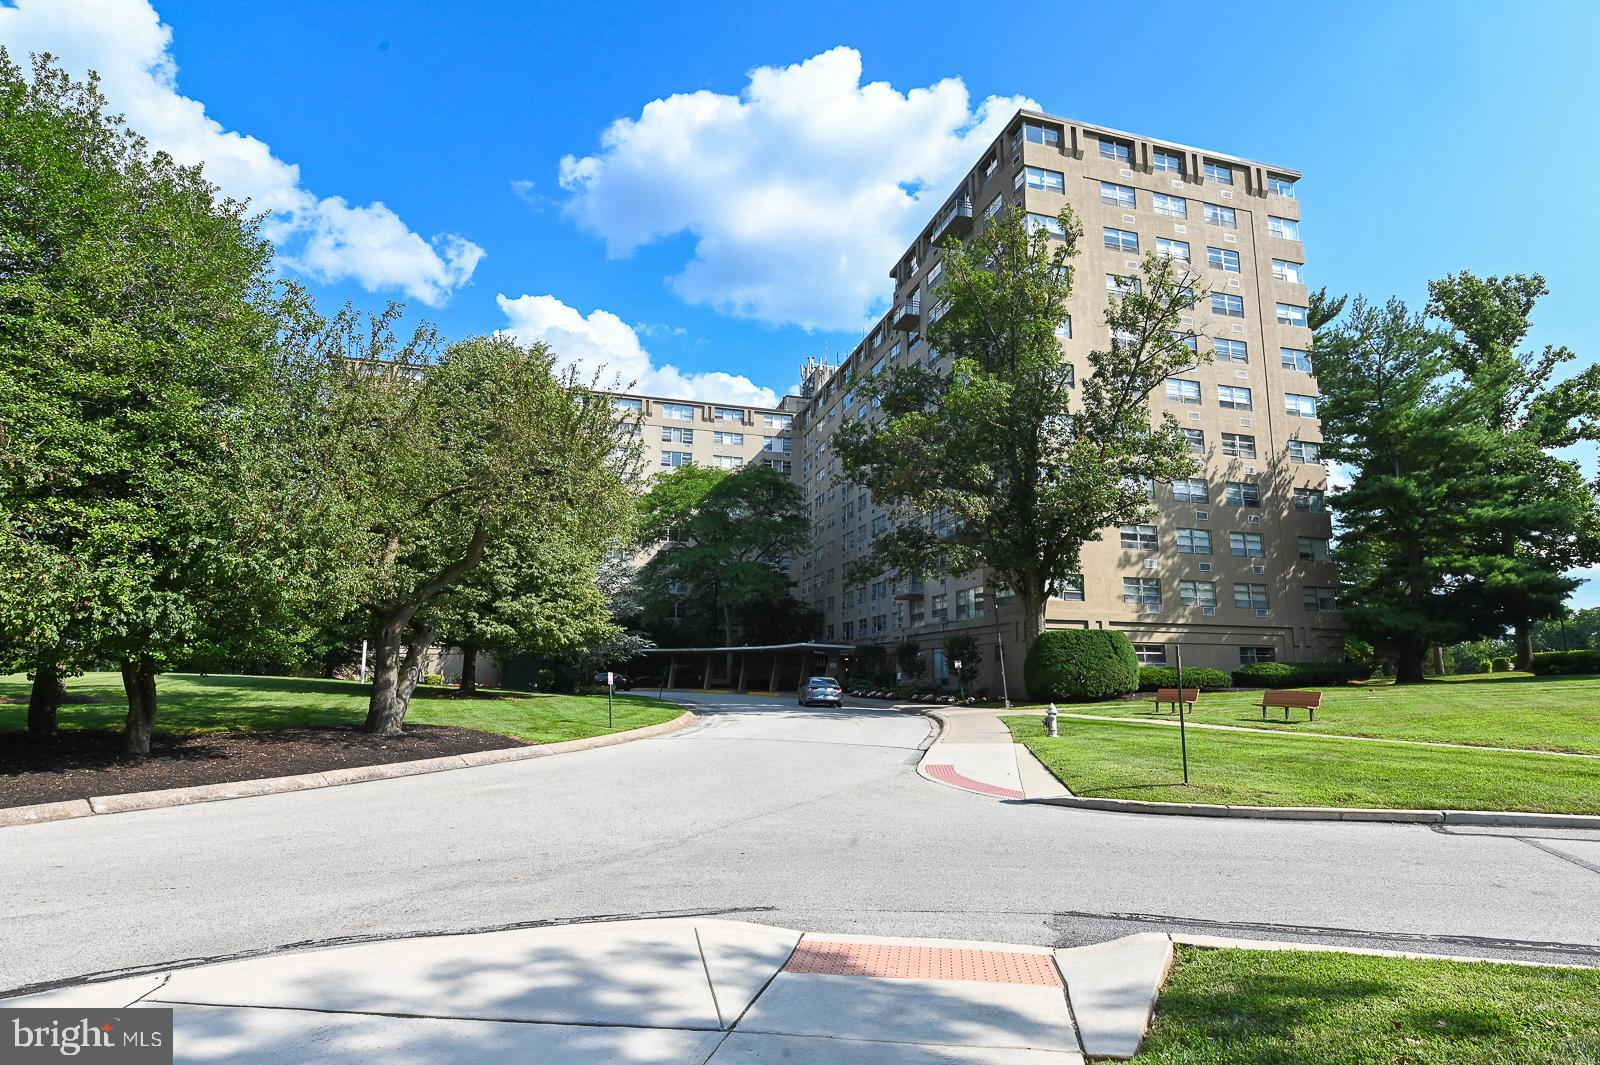 2nd floor unit at RADNOR HOUSE available immediately, convenient to Villanova University, bus routes, shopping and everything the Main Line has to offer.  Secure entry, on site laundry, pool, plenty of parking.  Seller can close quickly.